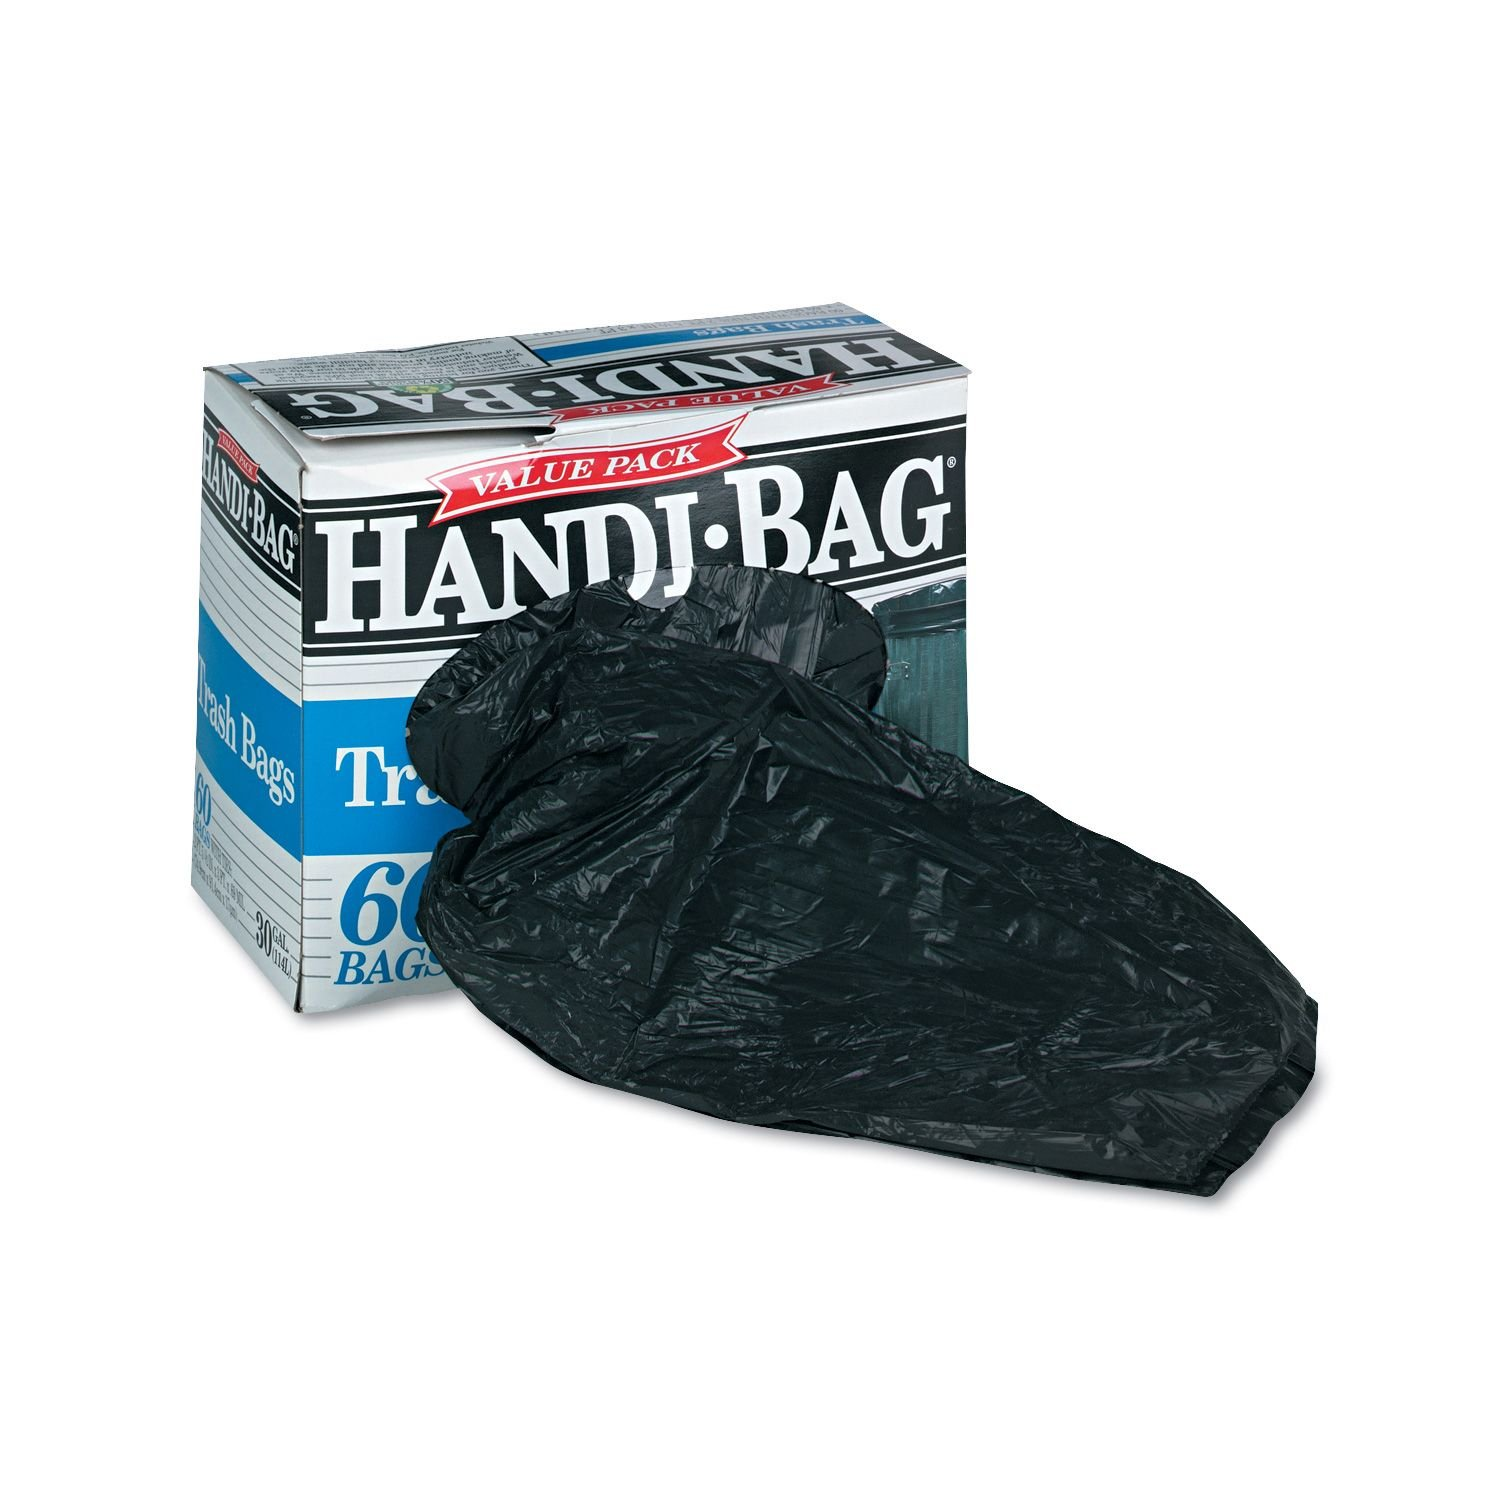 Handi-Bag - Super Value Pack Trash Bags, 30gal, .69mil, 36 x 29.5, Black - 60/Box валик механический handi roller wagner 407002